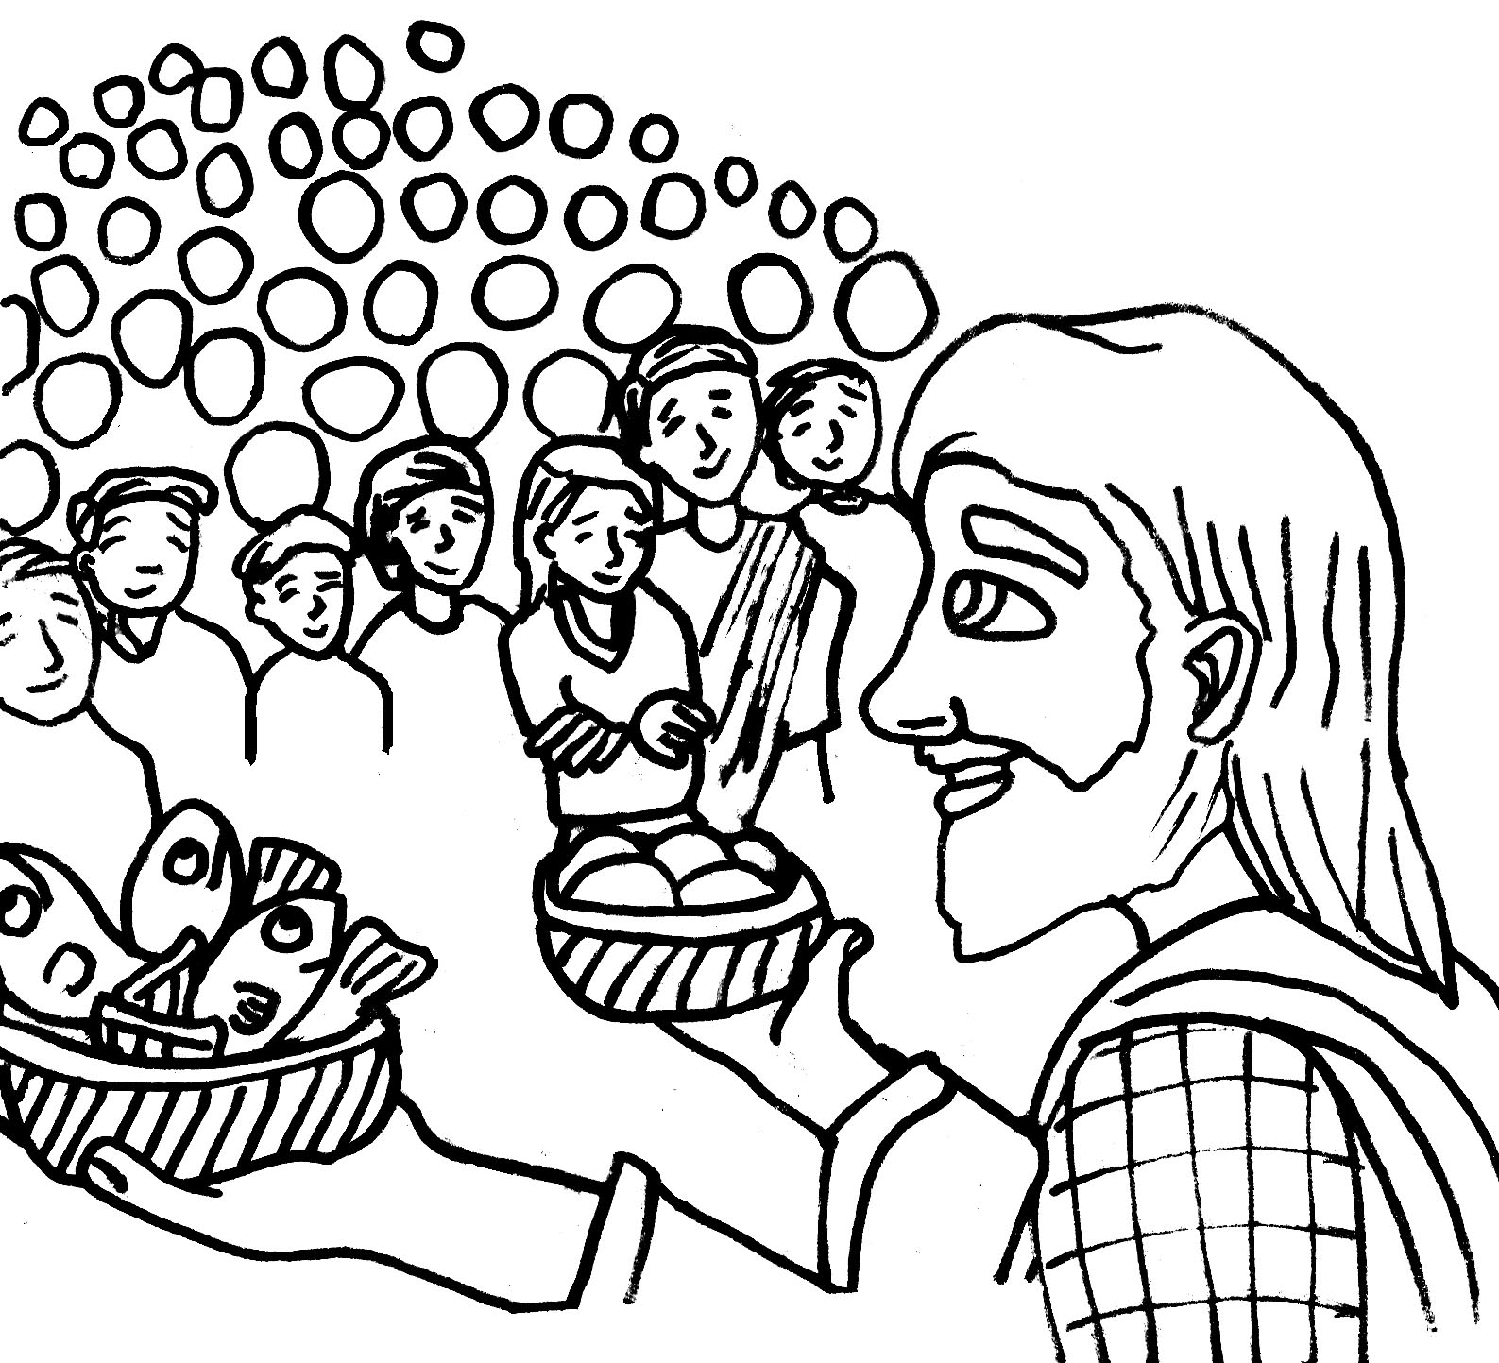 1499x1363 Wealth Feeding Of The Five Thousand Coloring Page Jesus Feeds